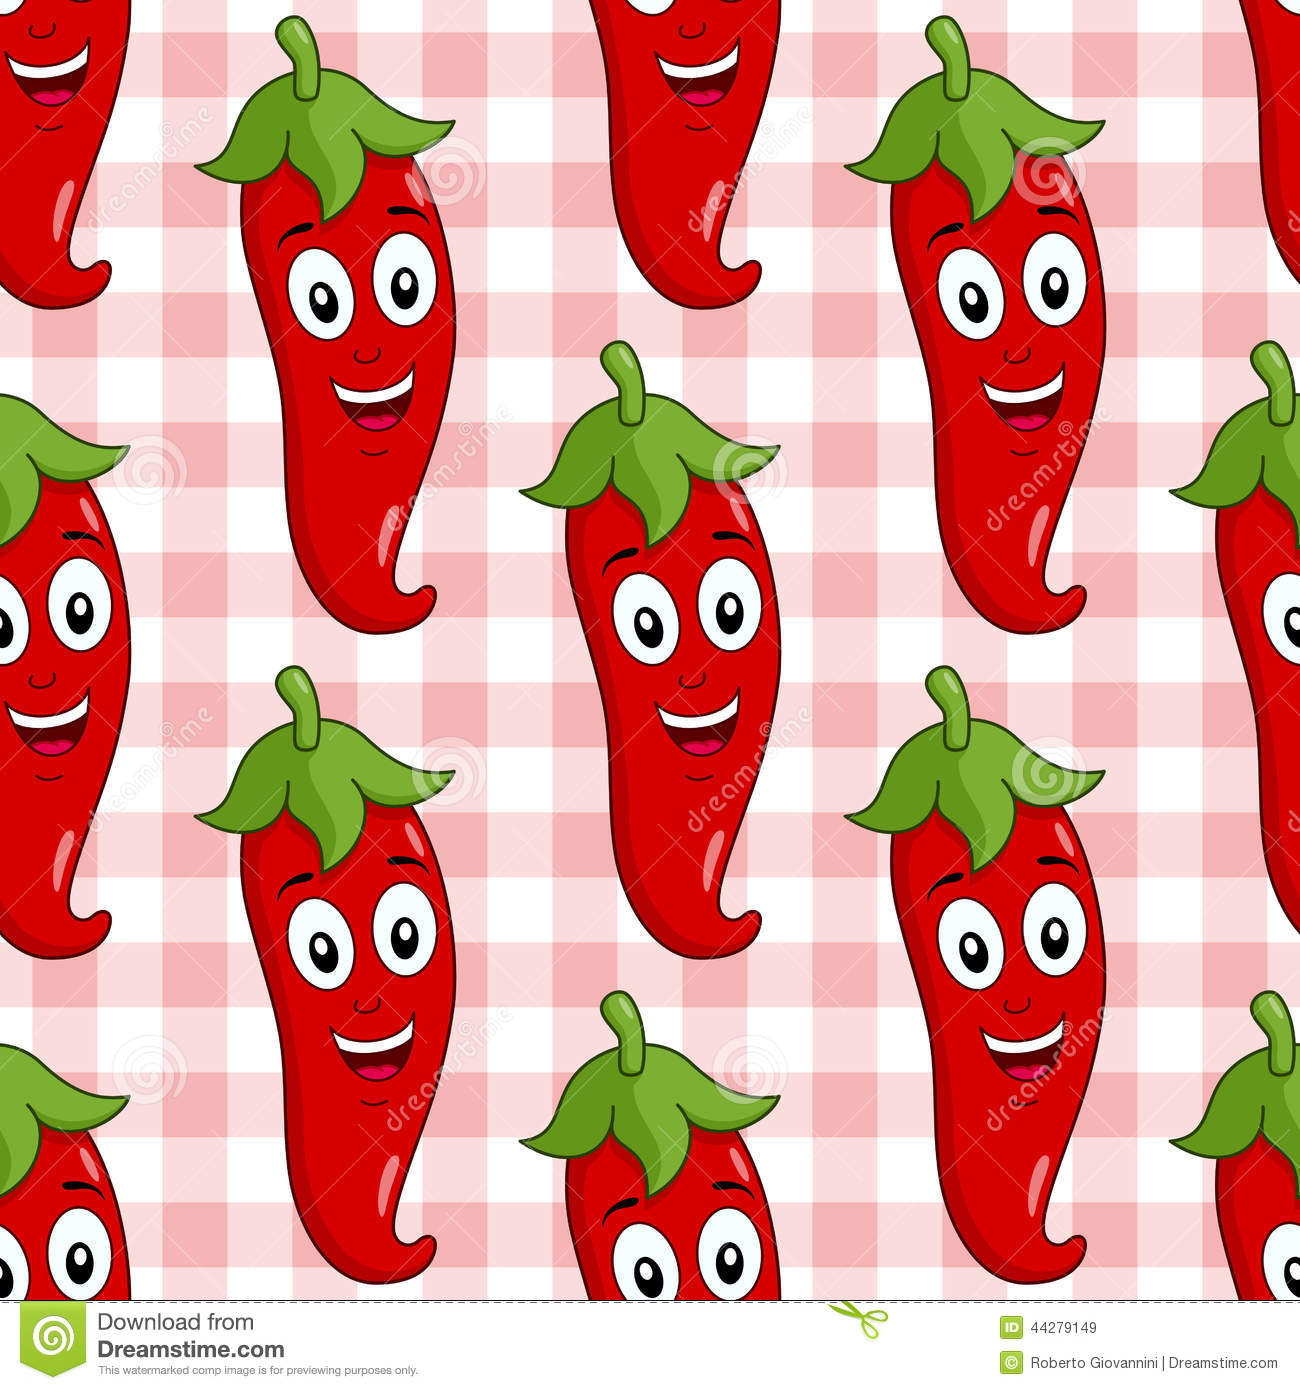 Bon A Seamless Pattern With A Cartoon Cute Red Hot Chili Pepper Character  Smiling, On A Checkered Picnic Tablecloth Background. Useful Also As Design  Element ...